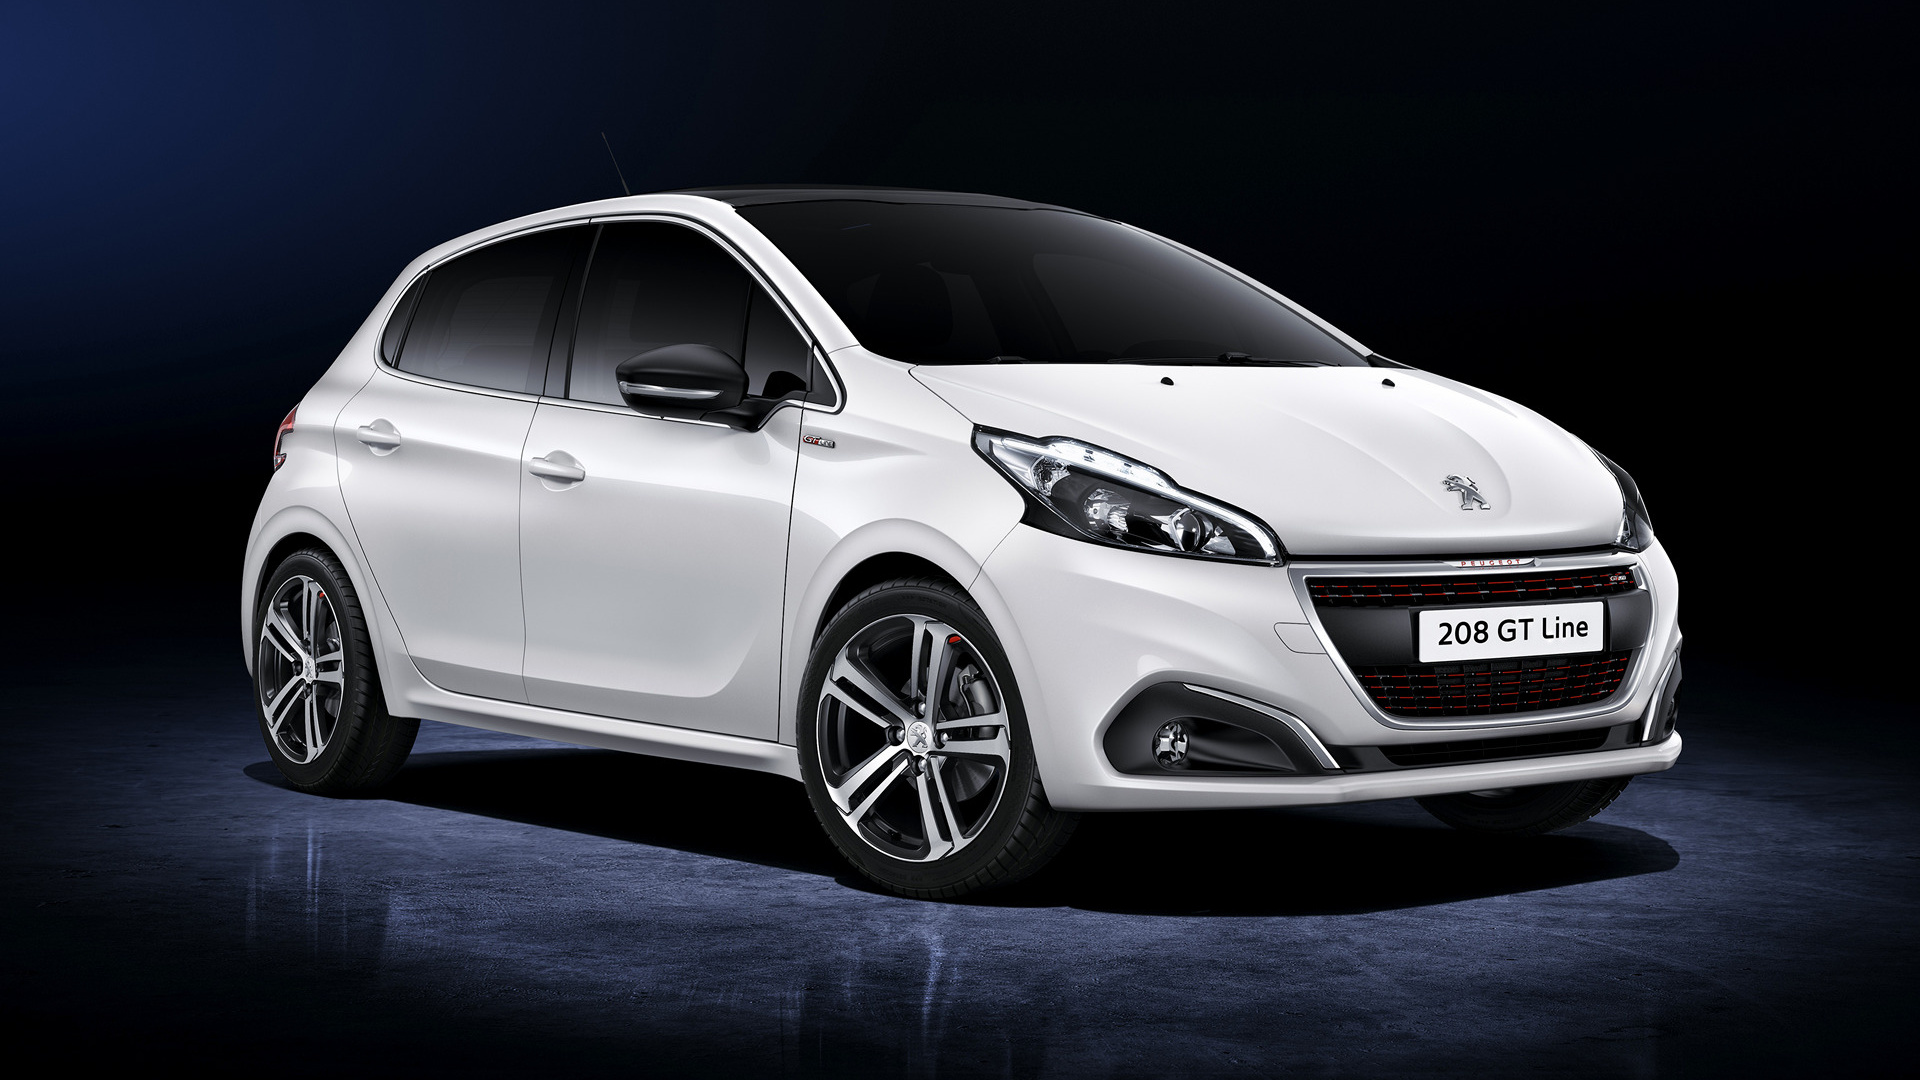 peugeot 208 gt line 5 door 2015 wallpapers and hd images car pixel. Black Bedroom Furniture Sets. Home Design Ideas